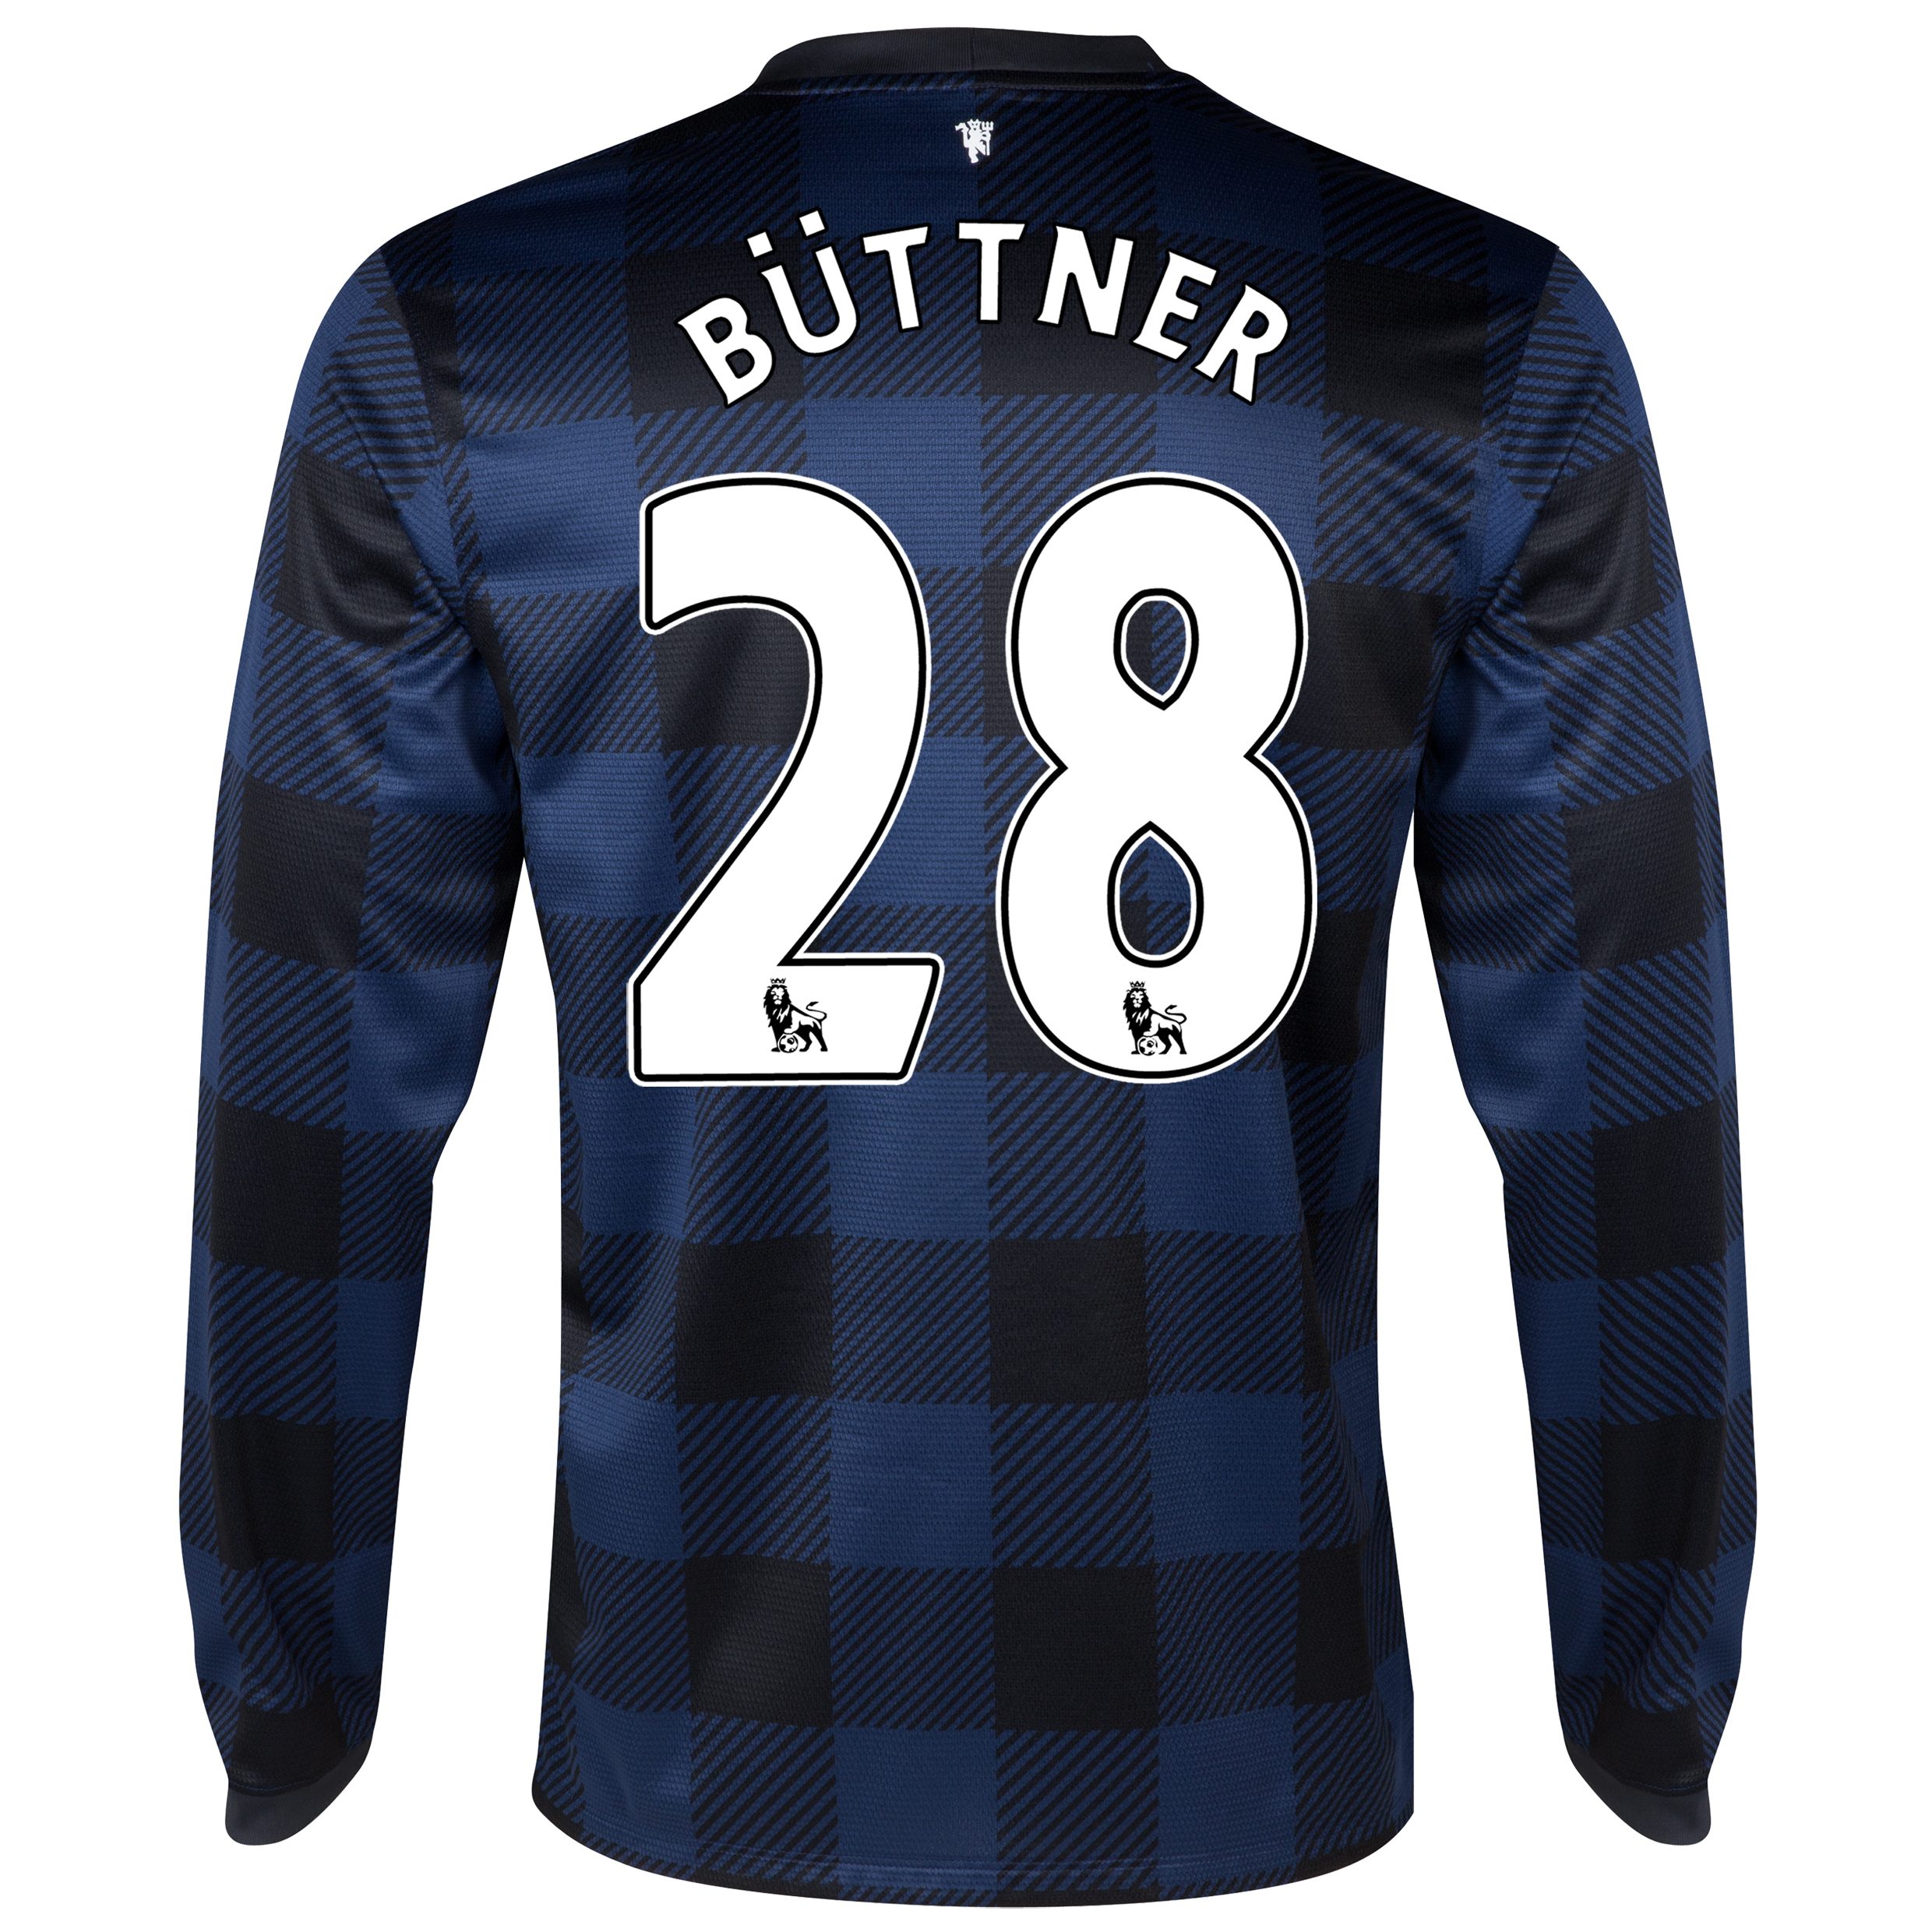 Manchester United Away Shirt 2013/14 - Long Sleeved with Büttner 28 printing